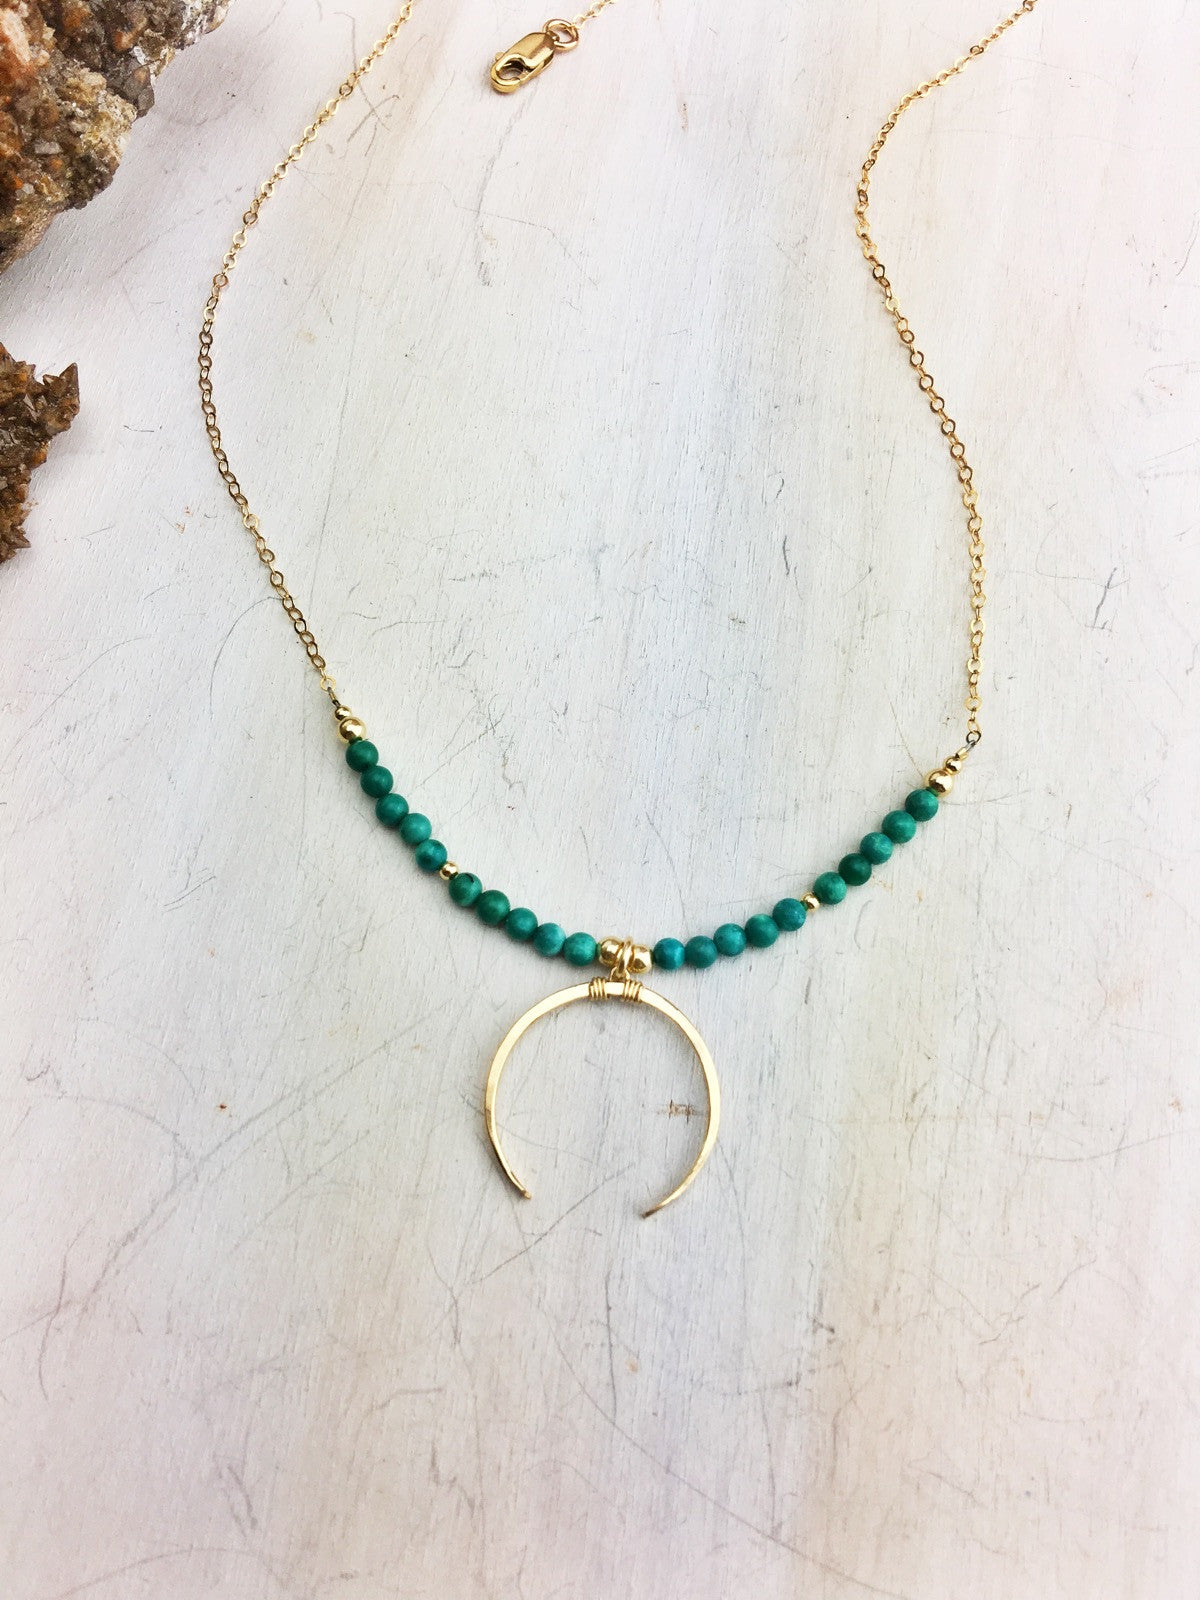 Hildur Necklace 'H' - Green Turquoise 14k Gold Filled Crescent Pendant and Chain